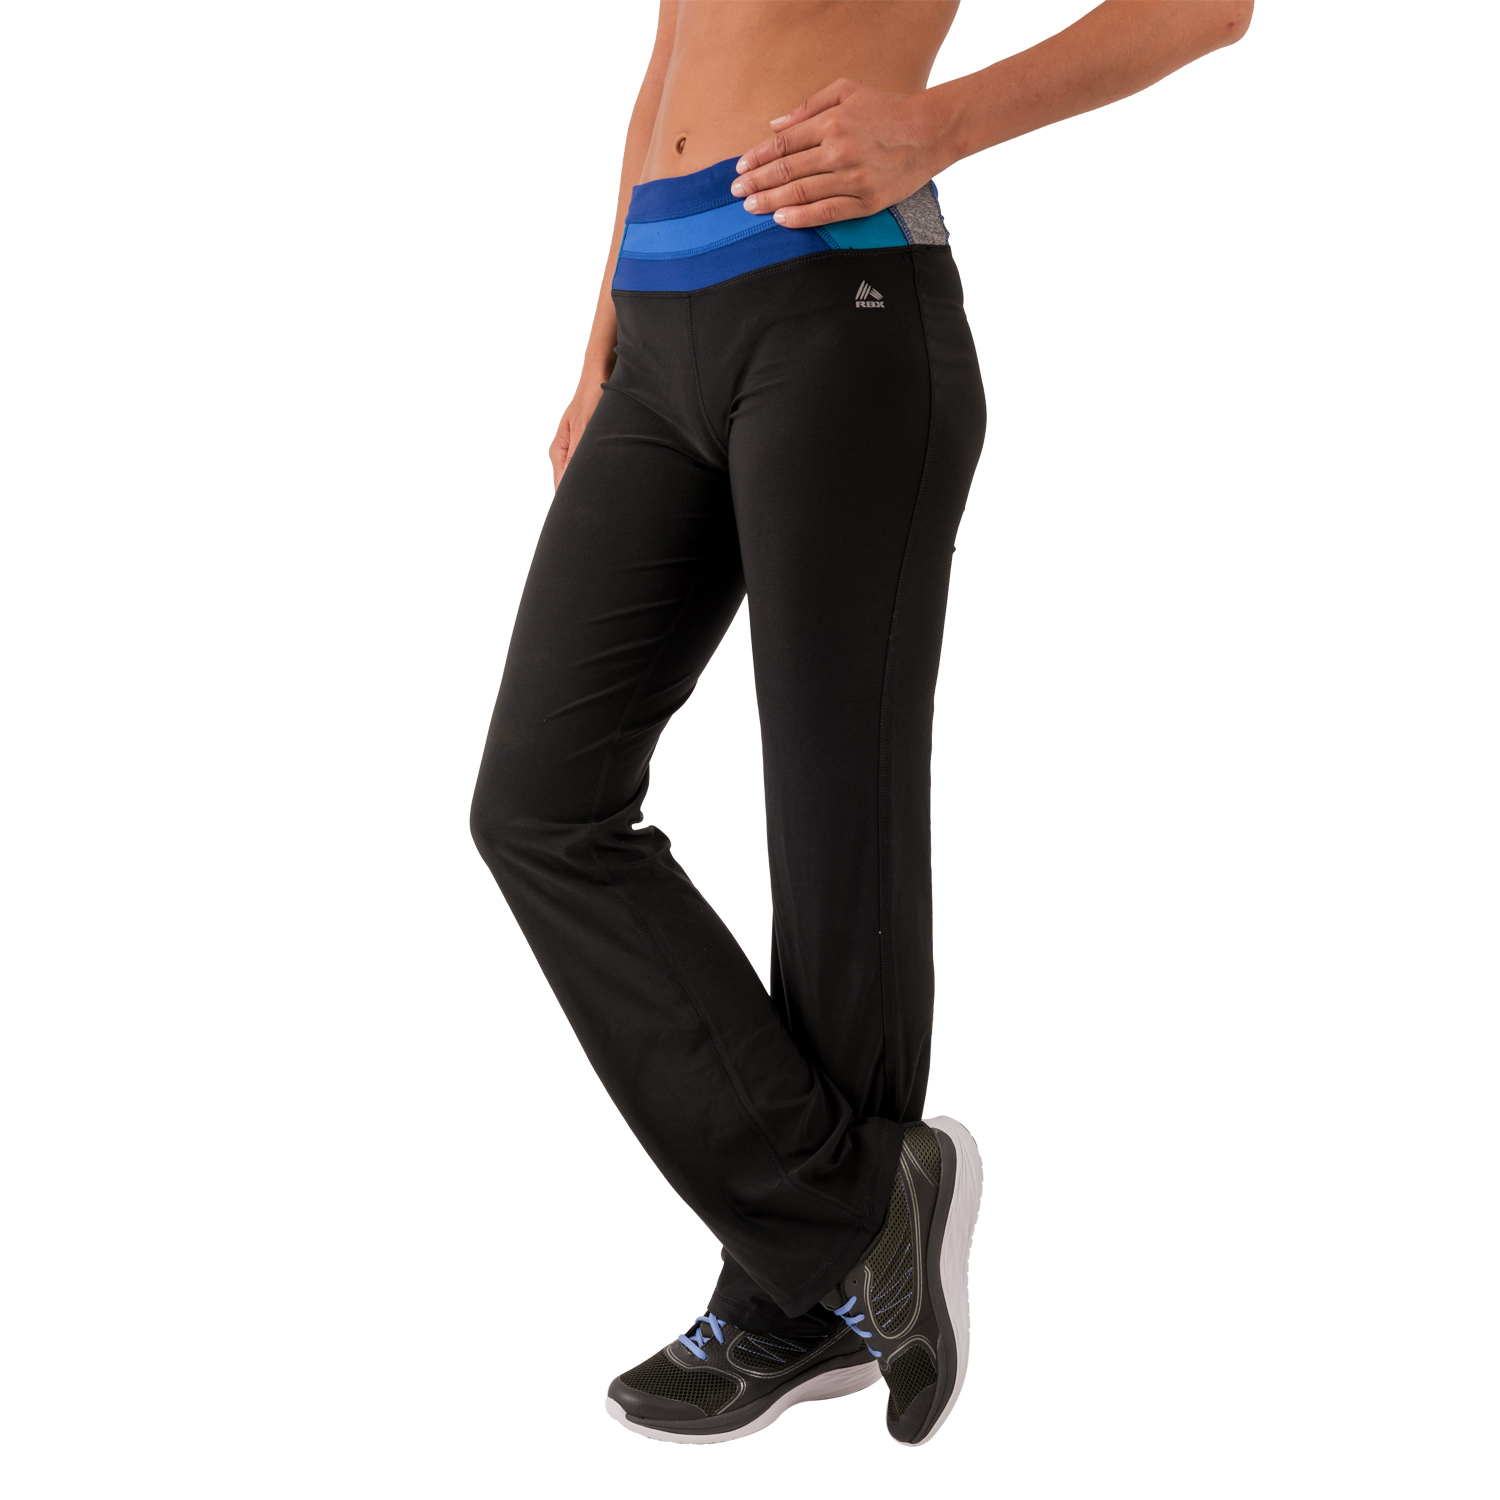 RBX Active Women's Boot Cut Yoga Pants With Paneled